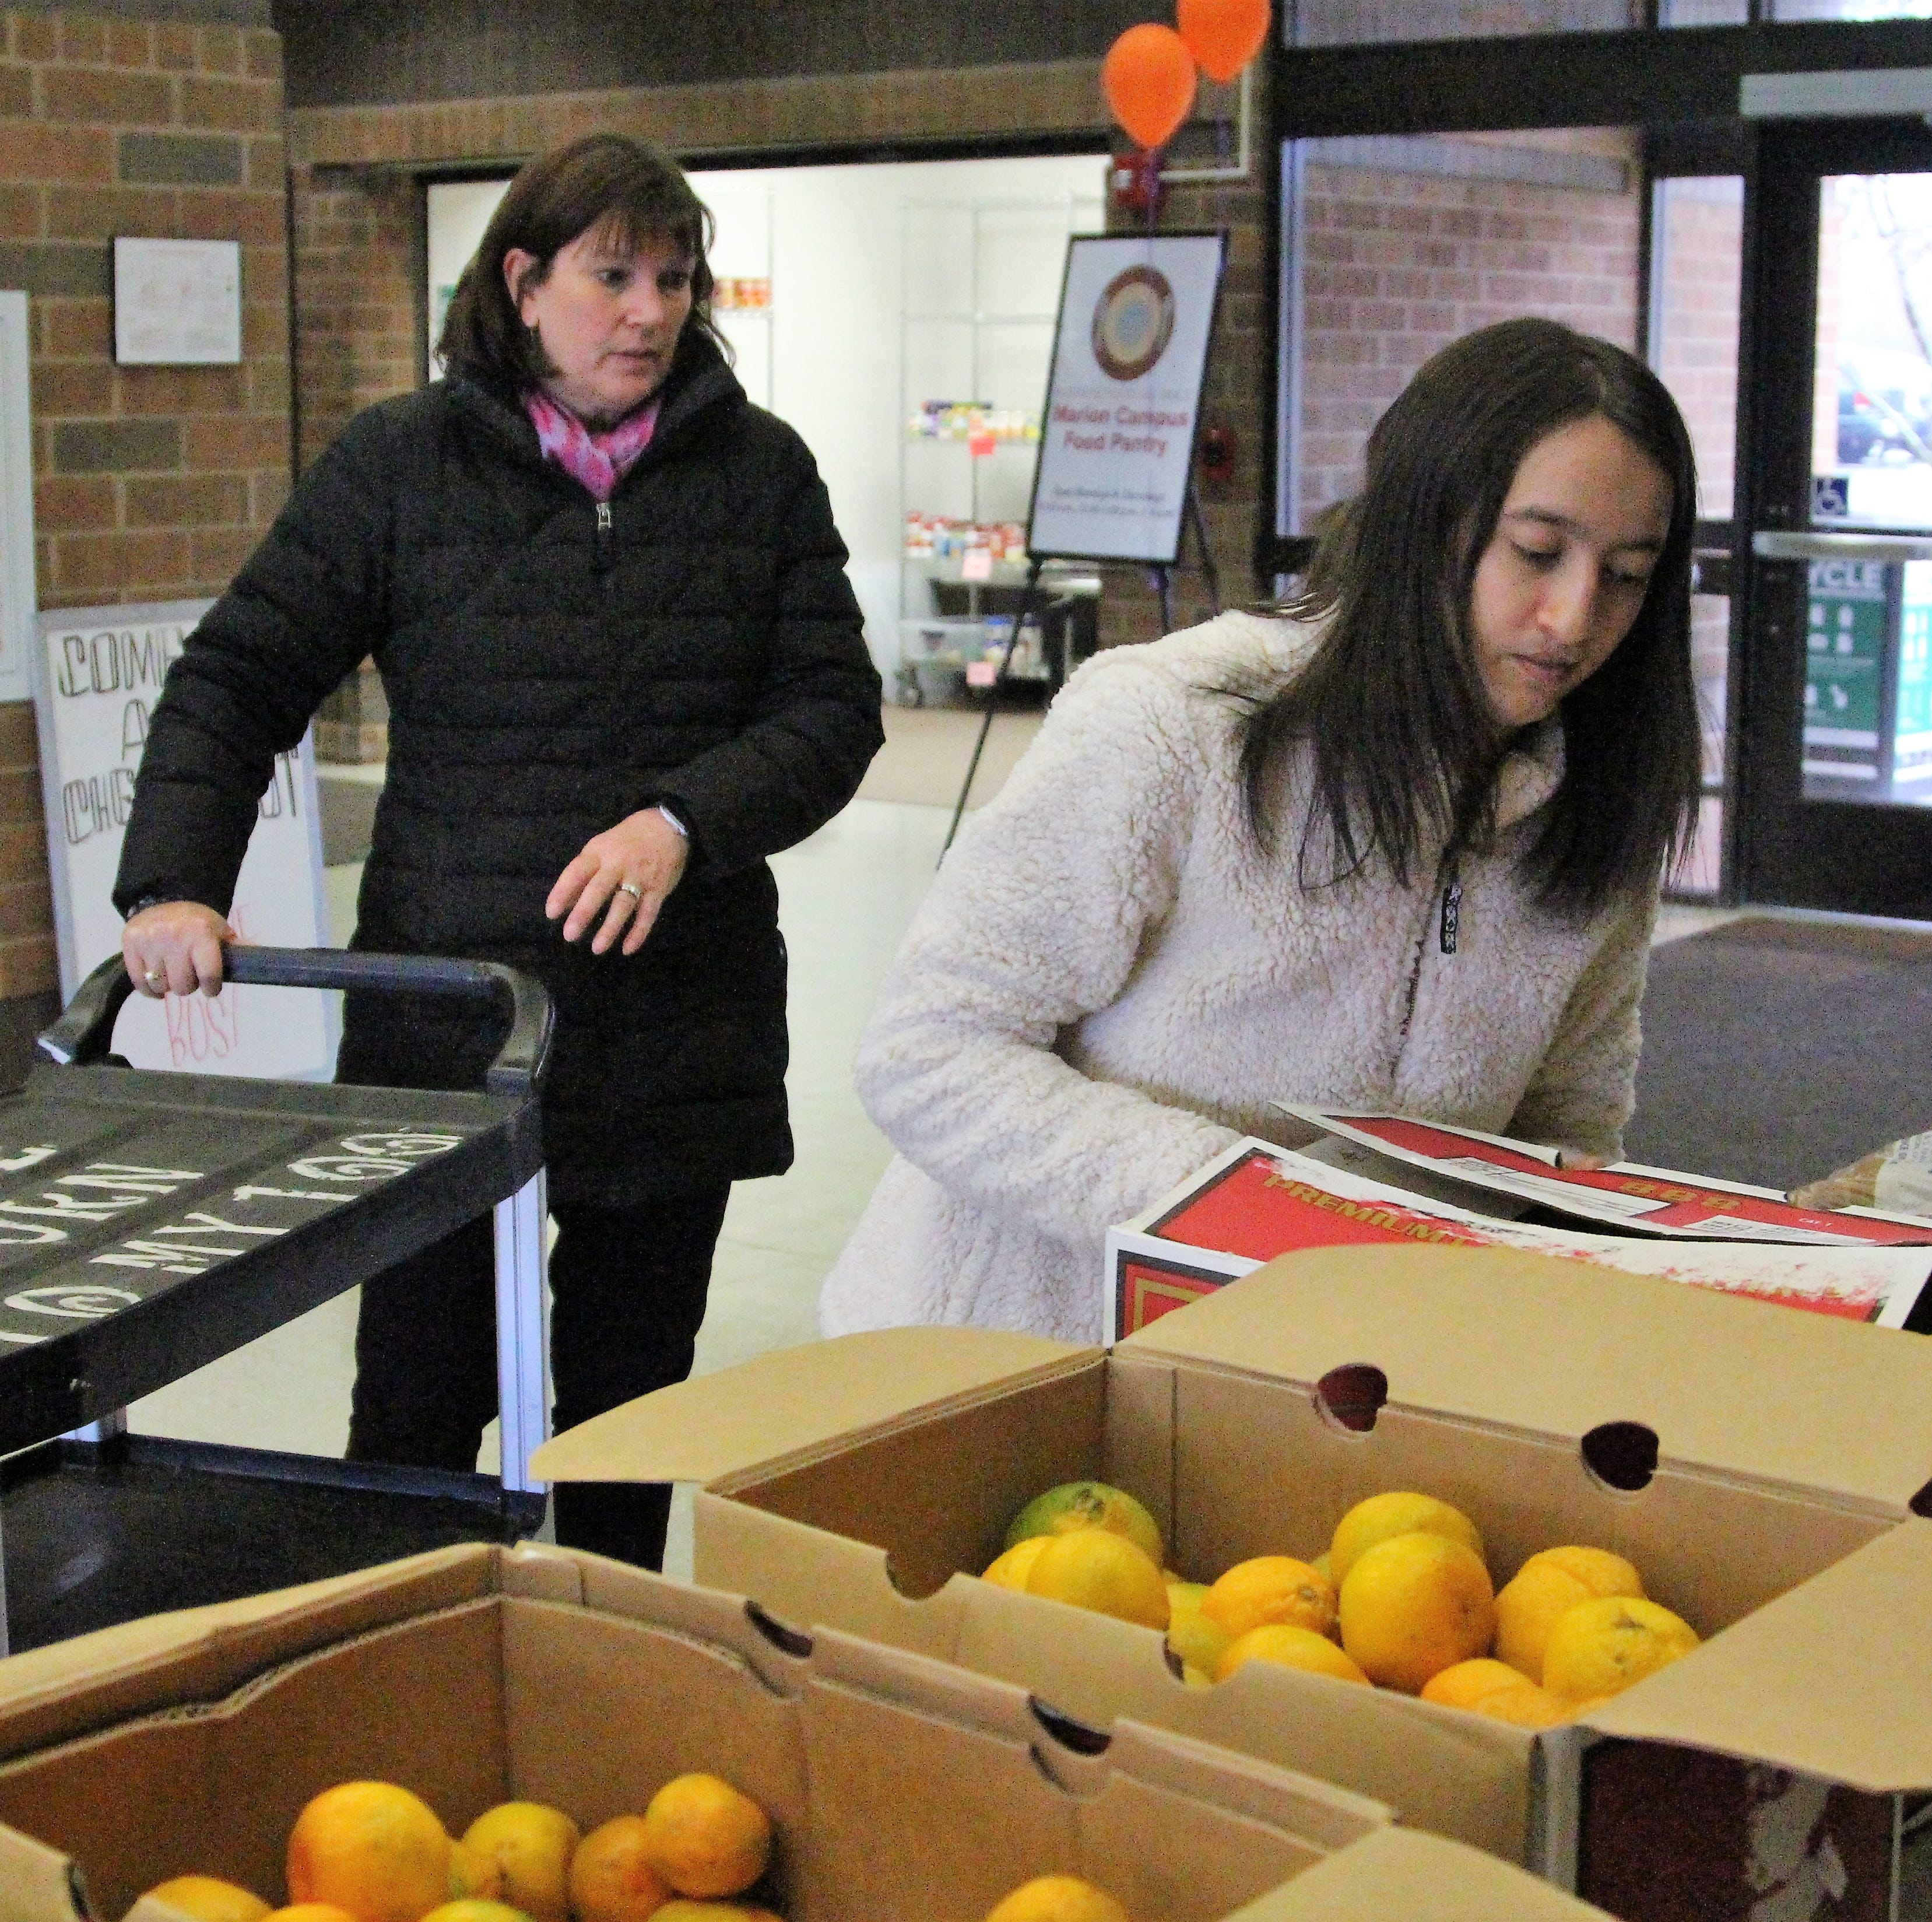 Ohio State Marion Student Paige Montgomery, 22,  sets down a box of oranges during a free produce market on Thursday. A recent study found that 26.7 percent of students surveyed at the campus dealt with food insecurity.